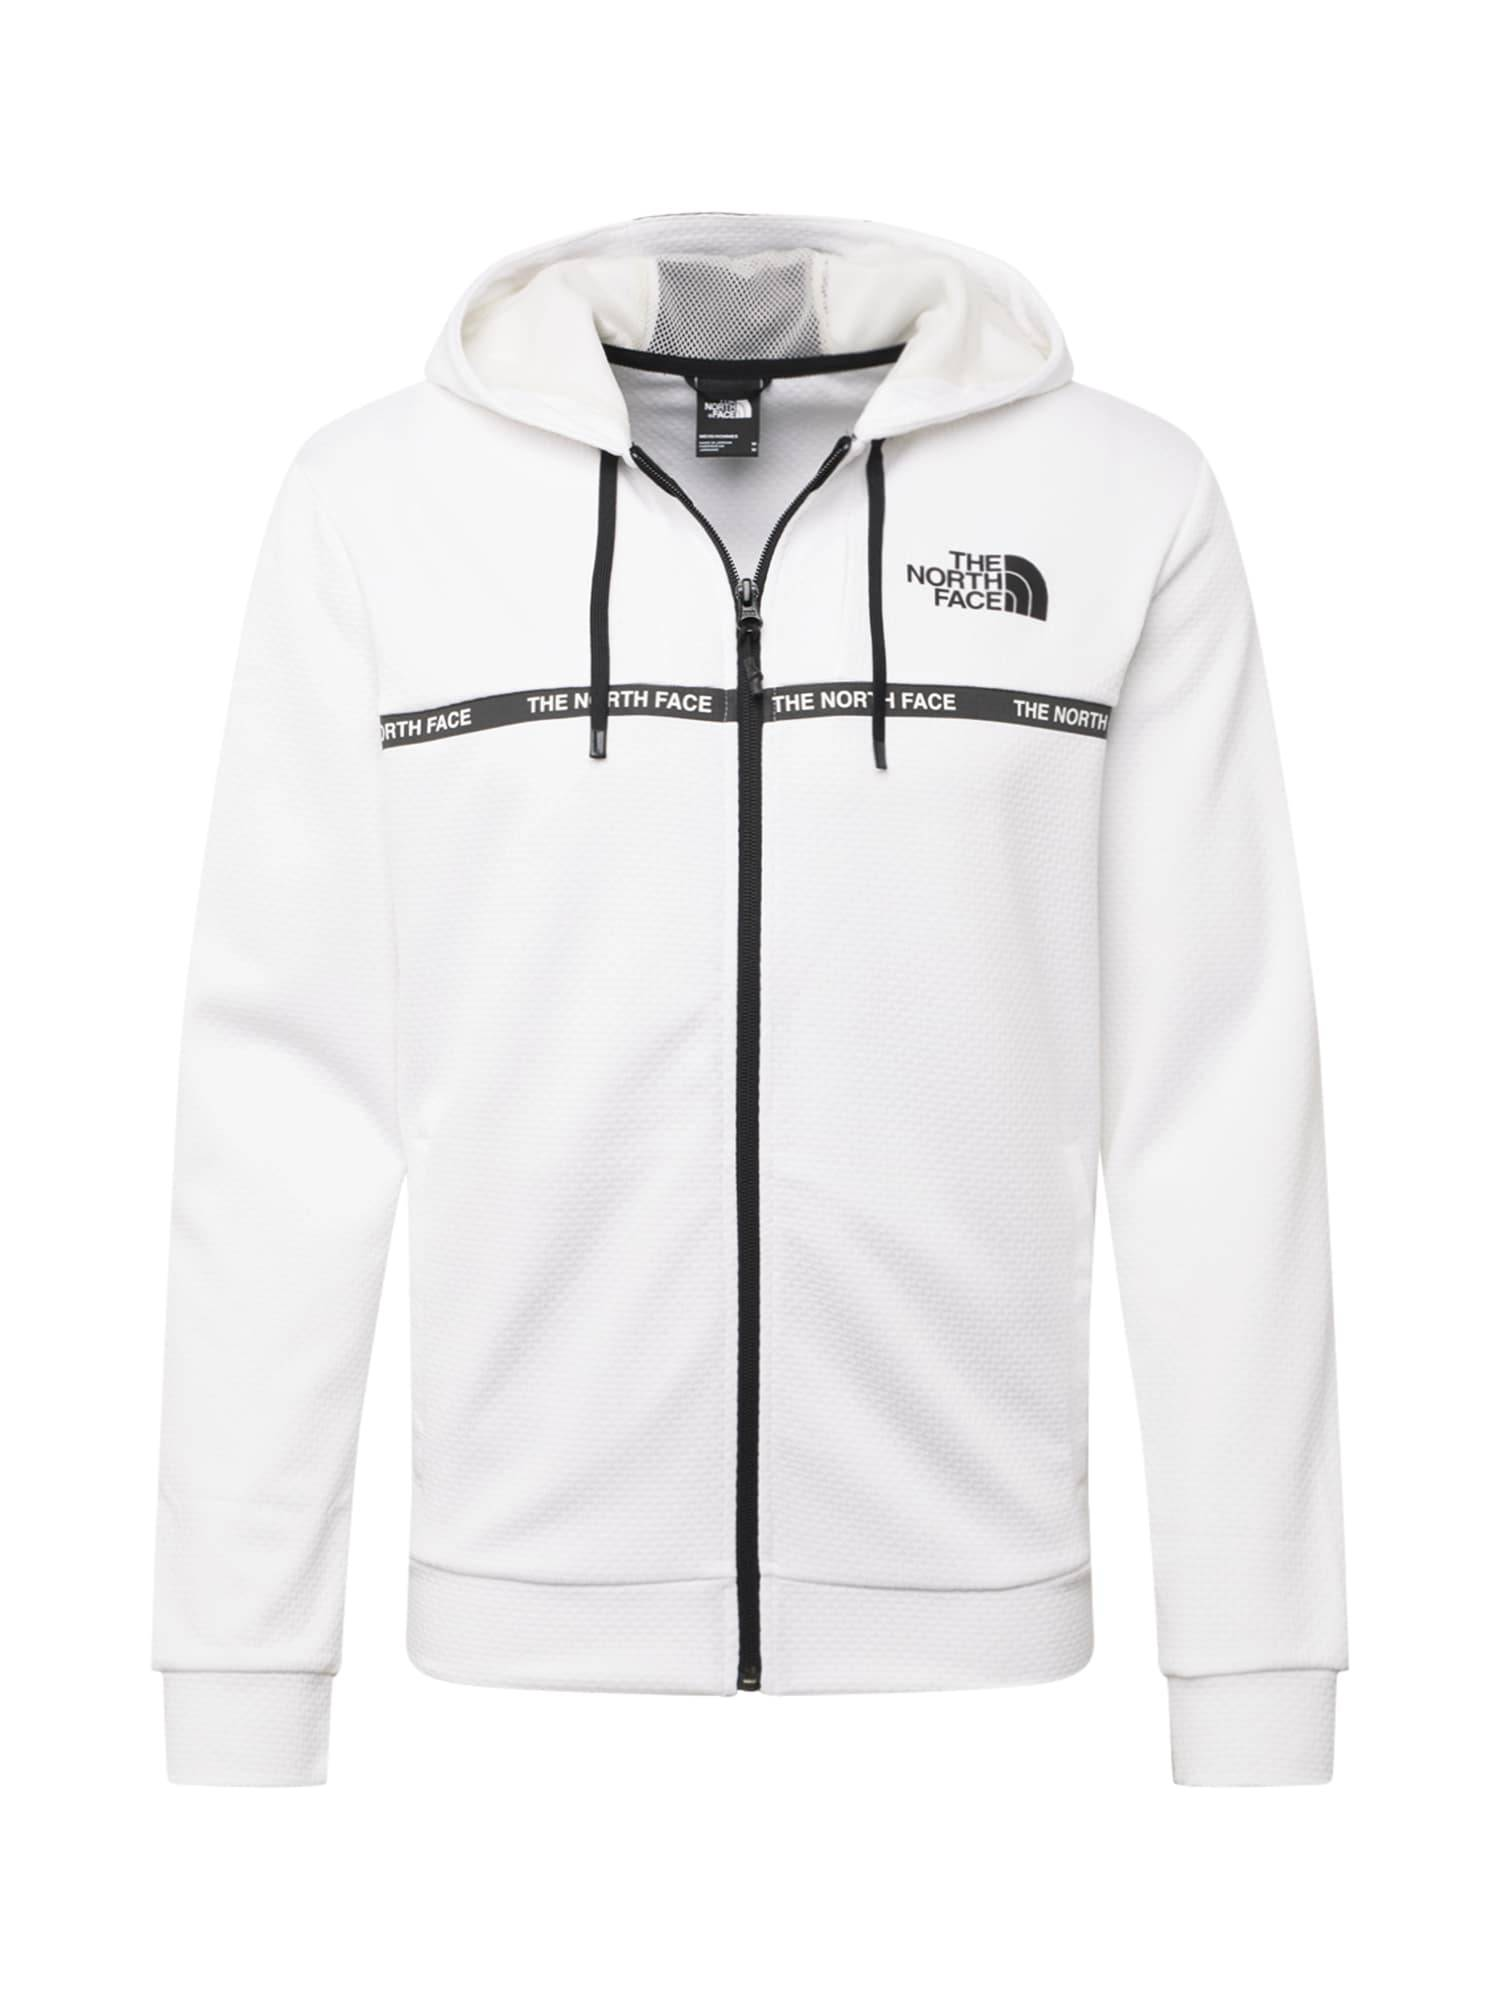 THE NORTH FACE Veste fonctionnelle 'Train'  - Blanc - Taille: XL - male